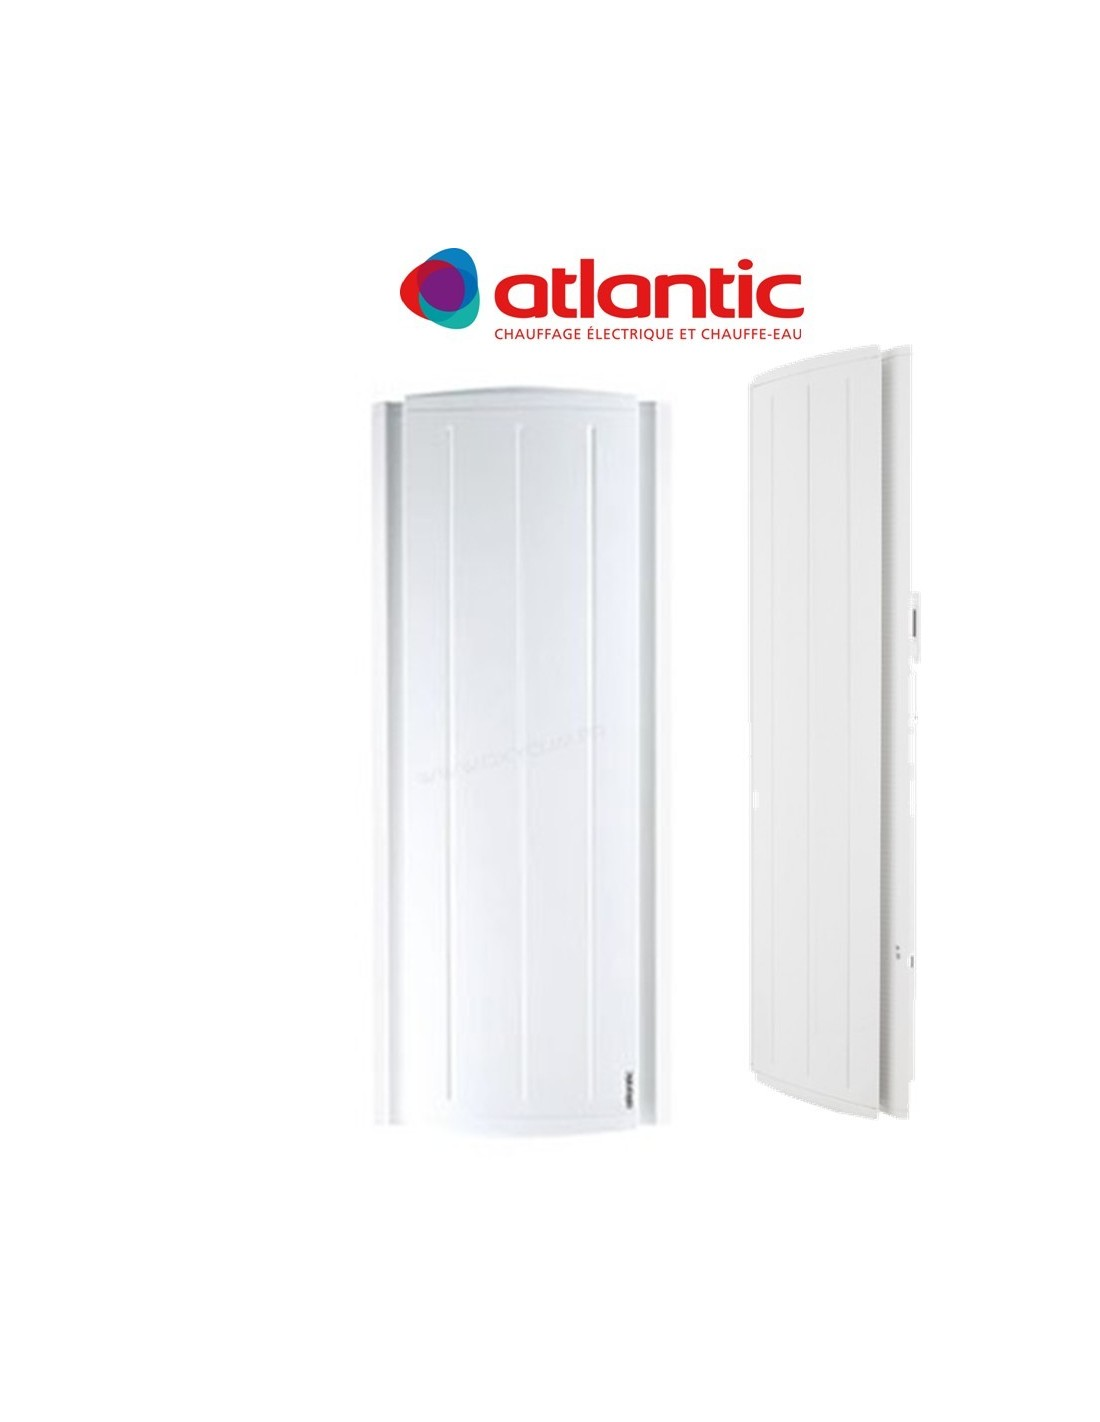 radiateur atlantic maradja vertical 1500w ebay. Black Bedroom Furniture Sets. Home Design Ideas